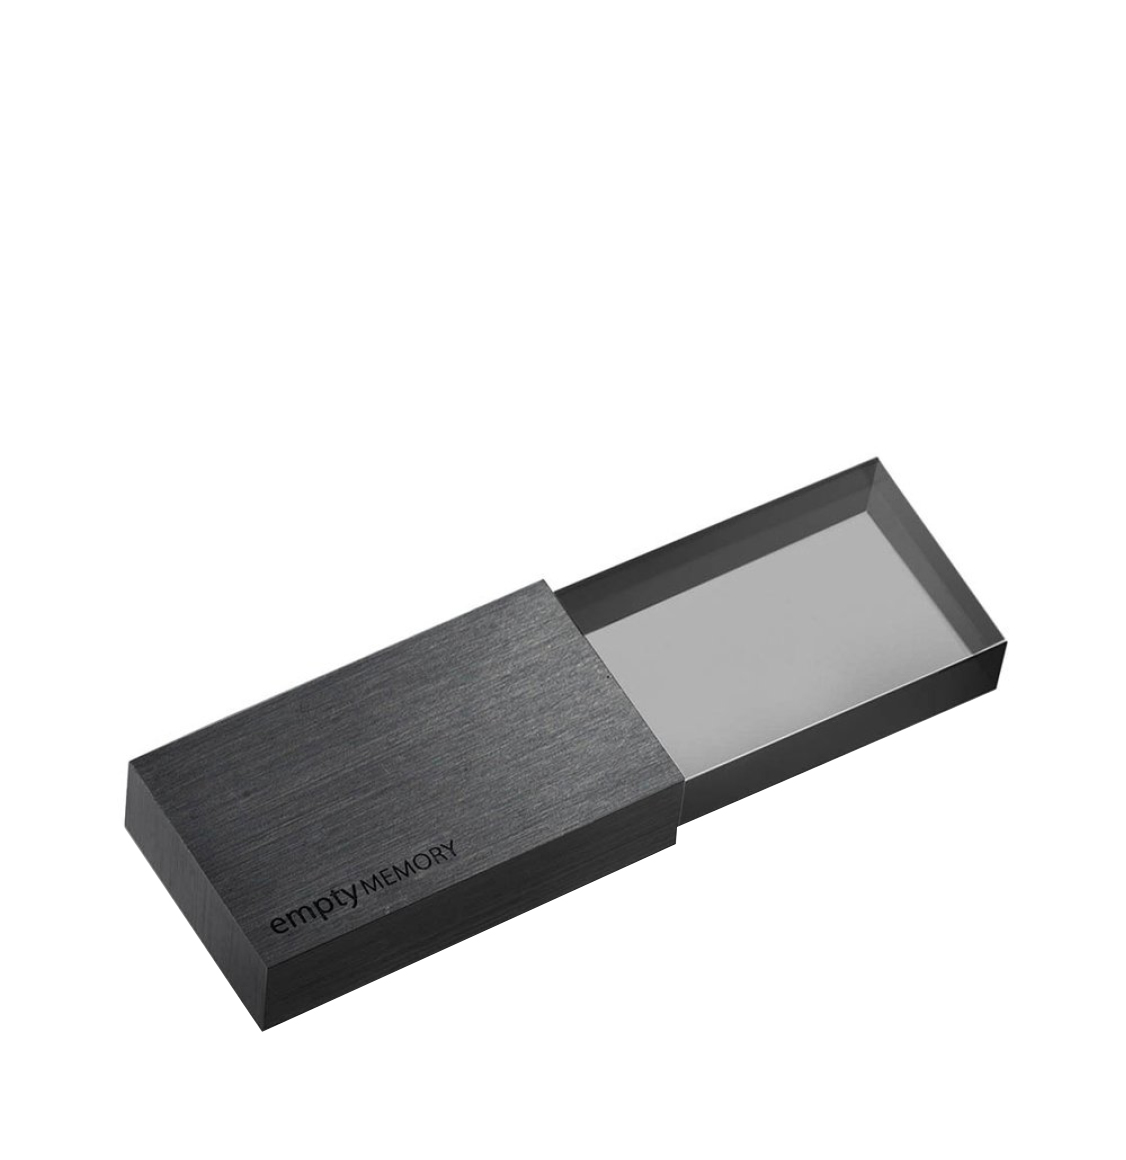 Beyond Object USB Memory Transparency Pure Black